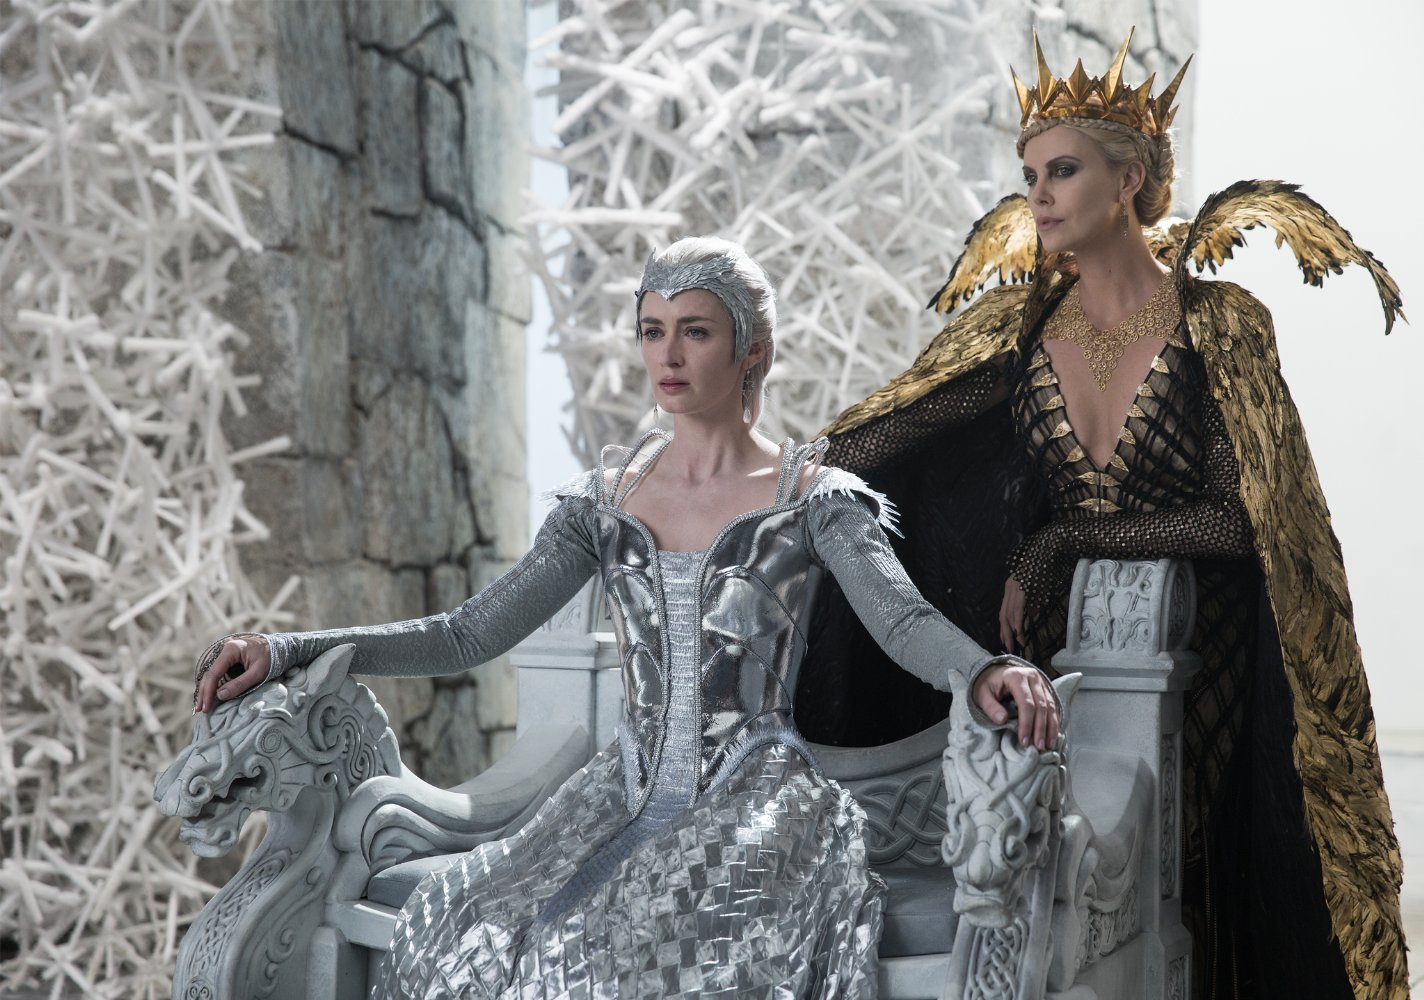 Emily Blunt and Charlize Theron in The Huntsman: Winter's War